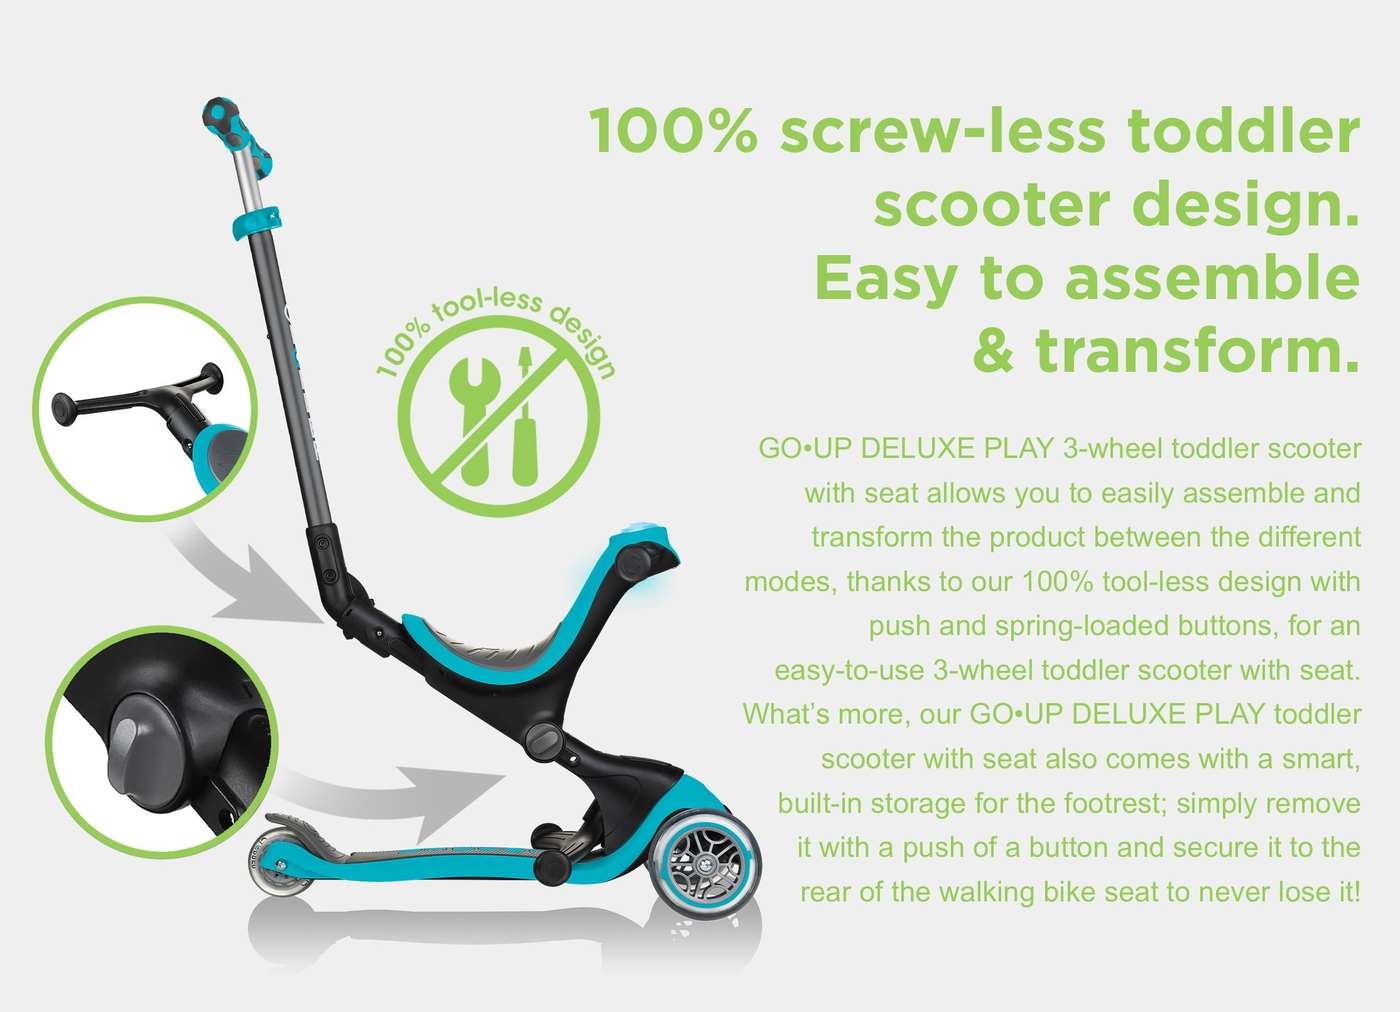 100% screw-less toddler scooter design. Easy to assemble & transform. GO•UP DELUXE PLAY 3-wheel toddler scooter with seat allows you to easily assemble and transform the product between the different modes, thanks to our 100% tool-less design with push and spring-loaded buttons, for an easy-to-use 3-wheel toddler scooter with seat. What's more, our GO•UP DELUXE PLAY toddler scooter with seat also comes with a smart, built-in storage for the footrest; simply remove it with a push of a button and secure it to the rear of the walking bike seat to never lose it!